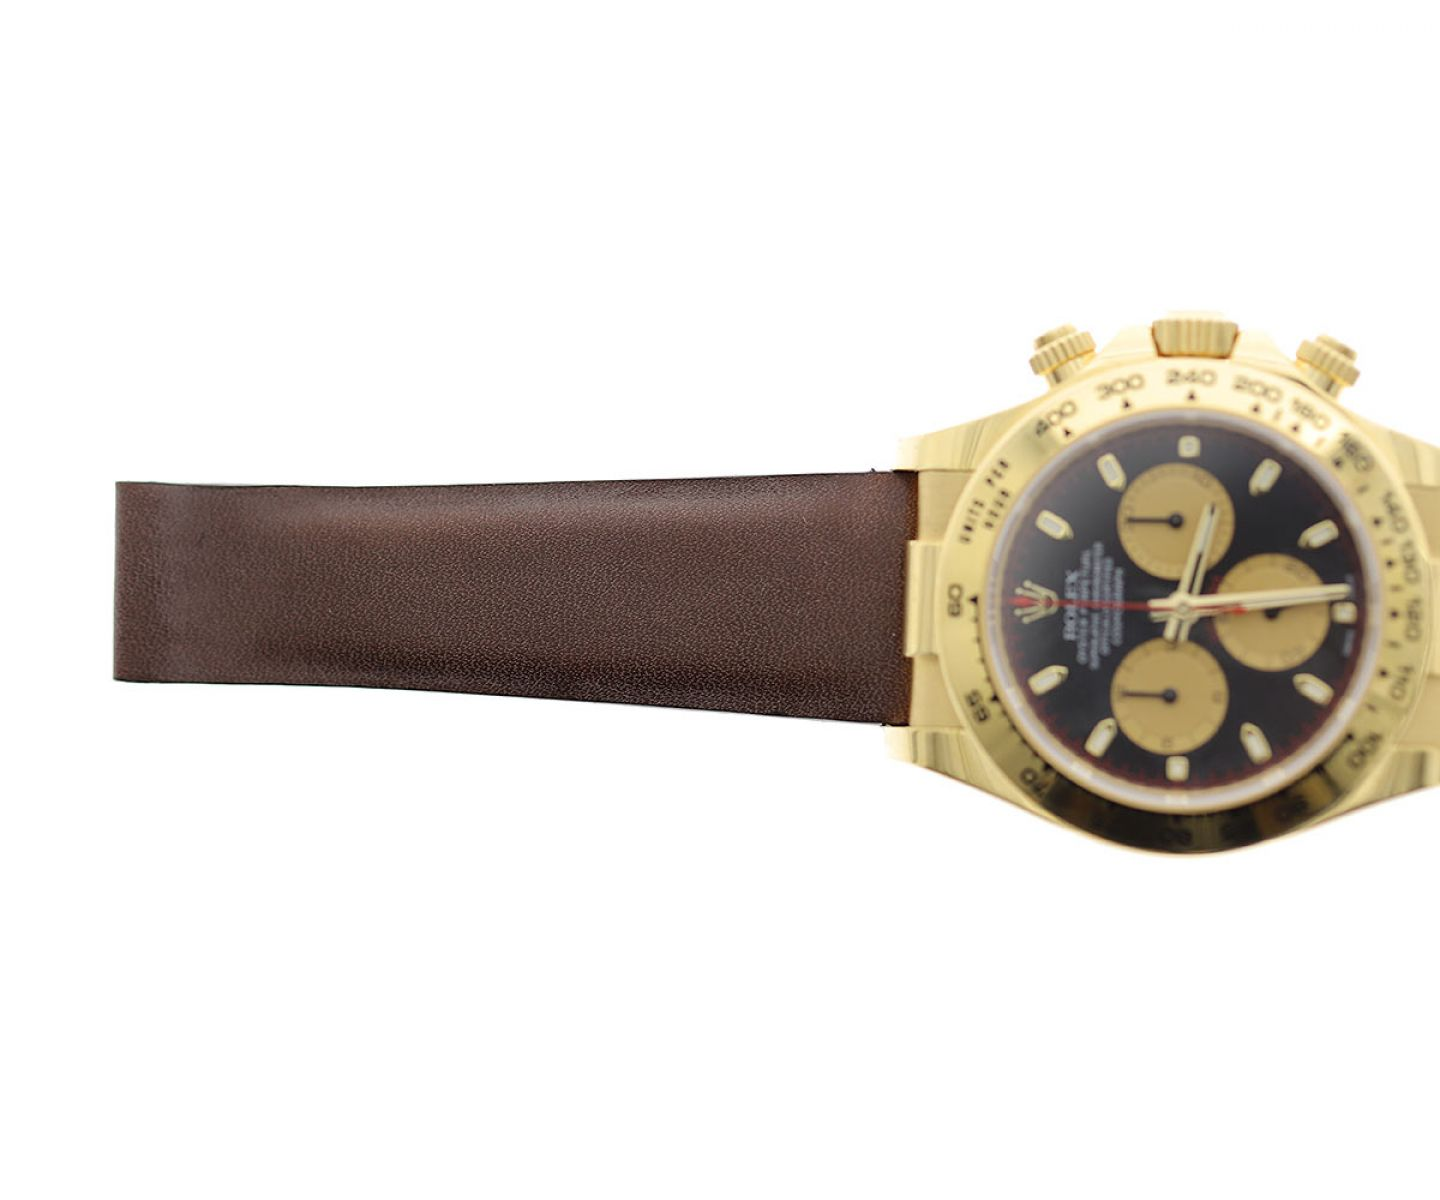 Brown strap 20mm for Rolex Daytona in Barenia / Luxury Hermes French calf leather